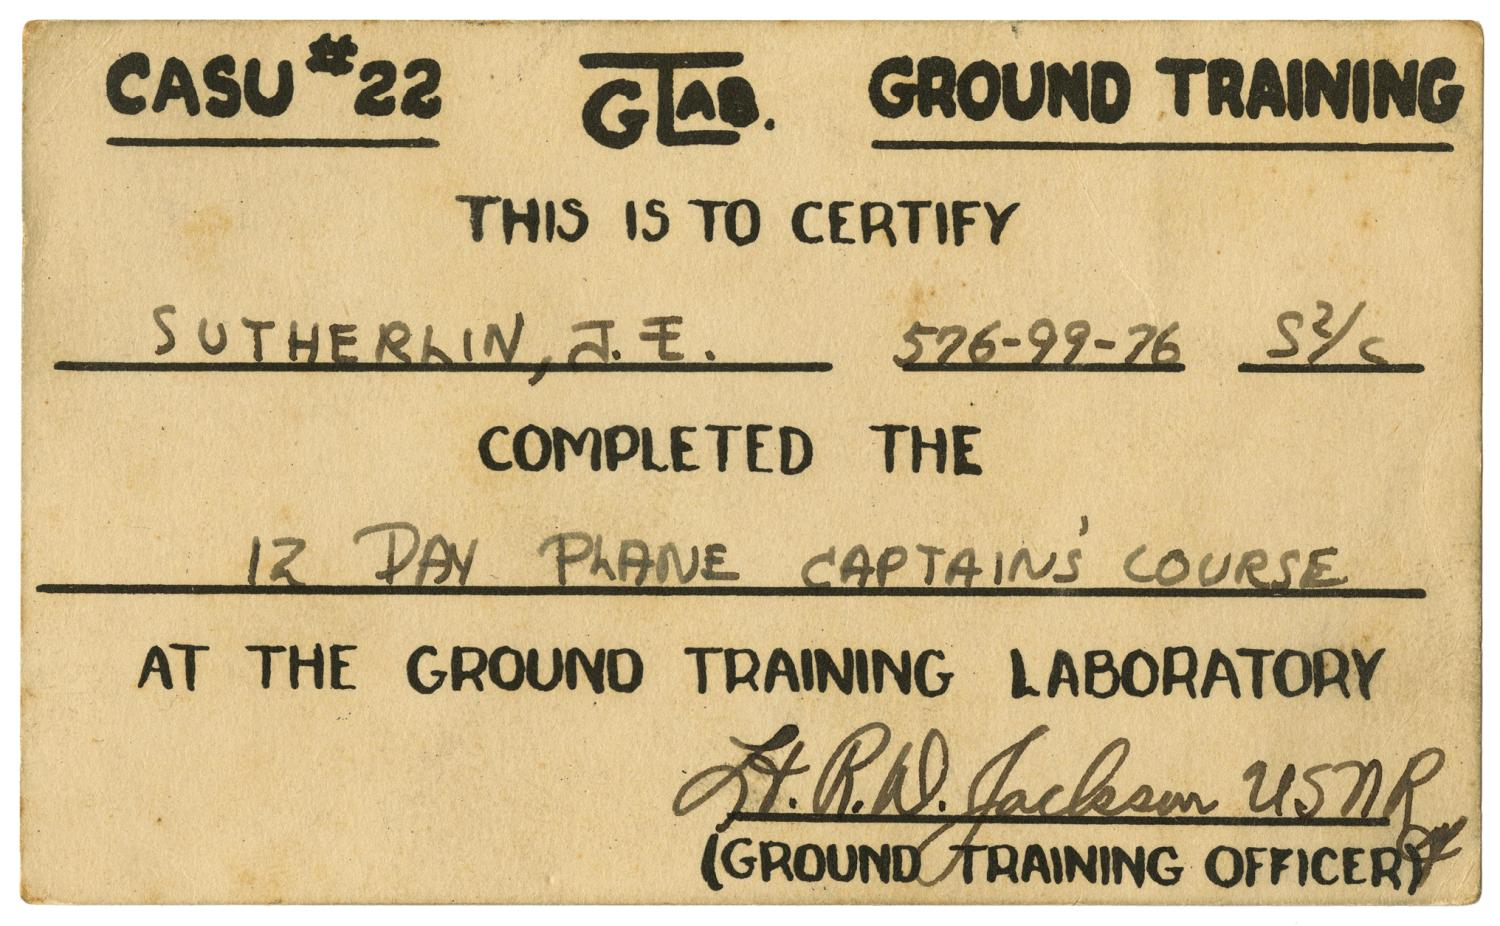 [CASU #22 GTAB Ground Training Certification Card for James E. Sutherlin]                                                                                                      [Sequence #]: 1 of 2